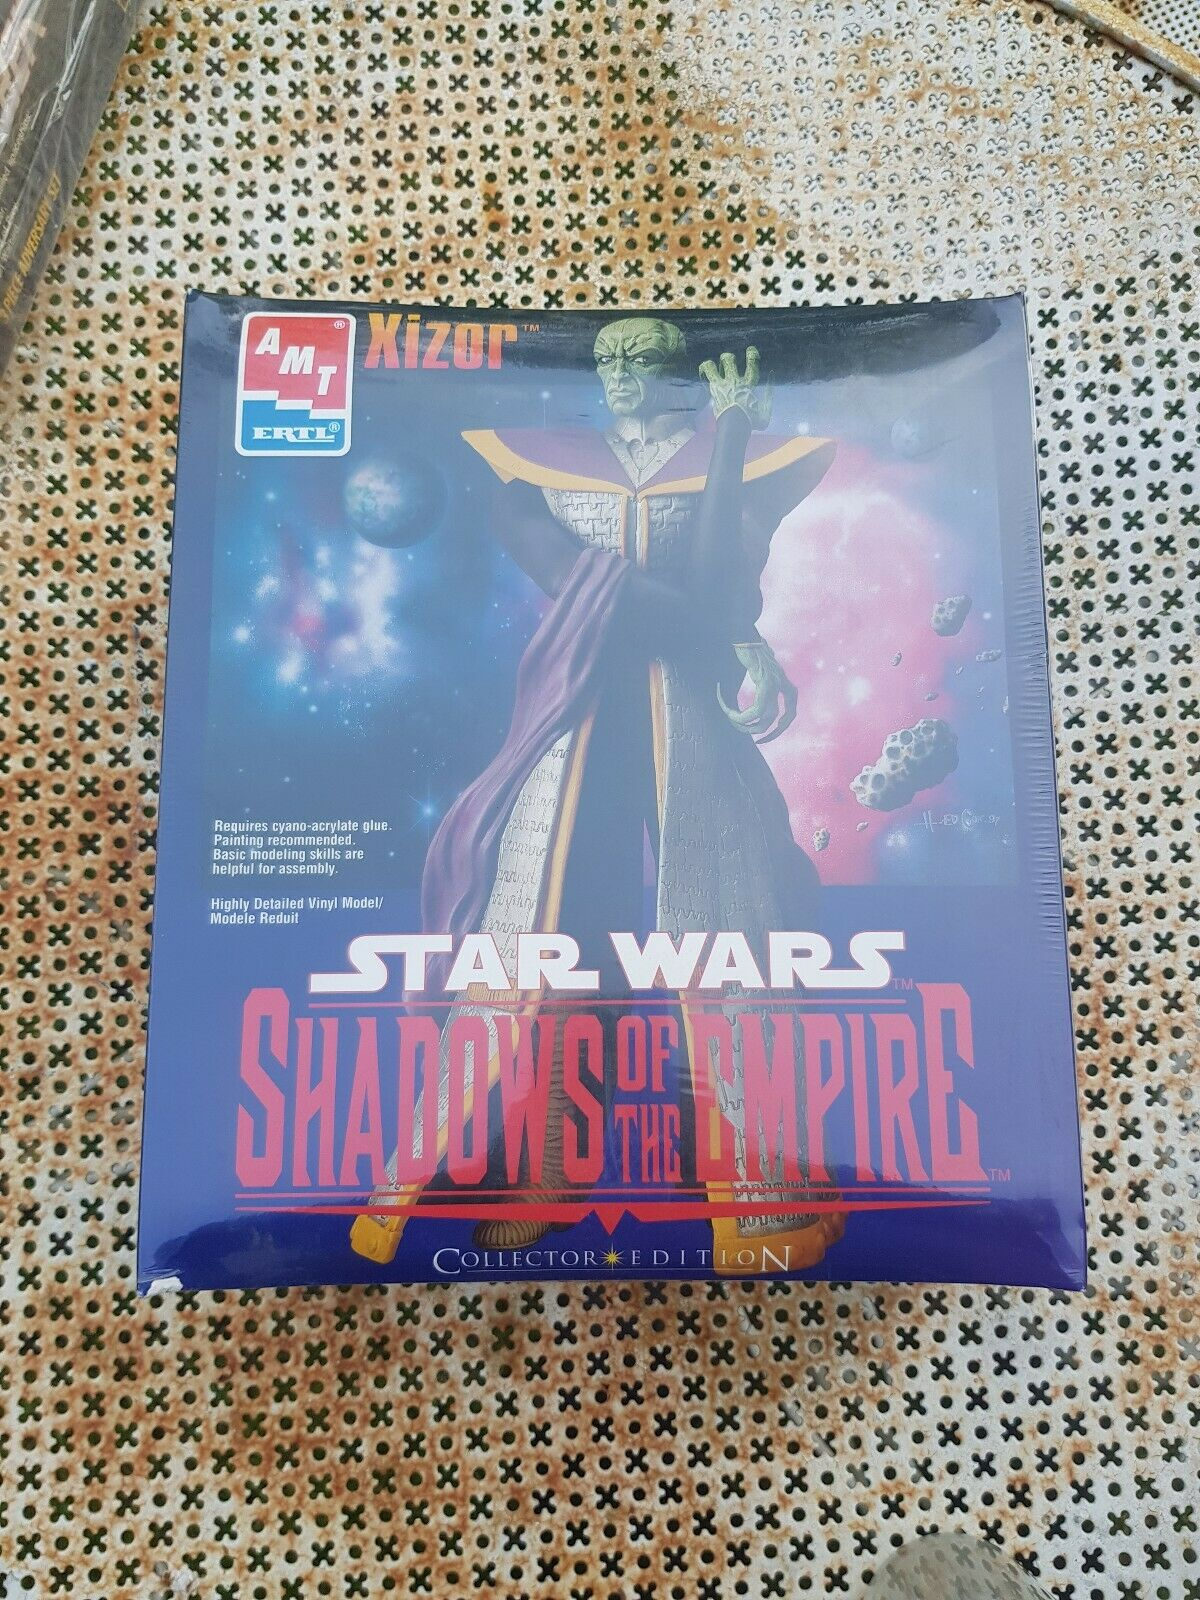 AMT ERTL STAR WARS SHADOWS OF THE EMPIRE collector edition